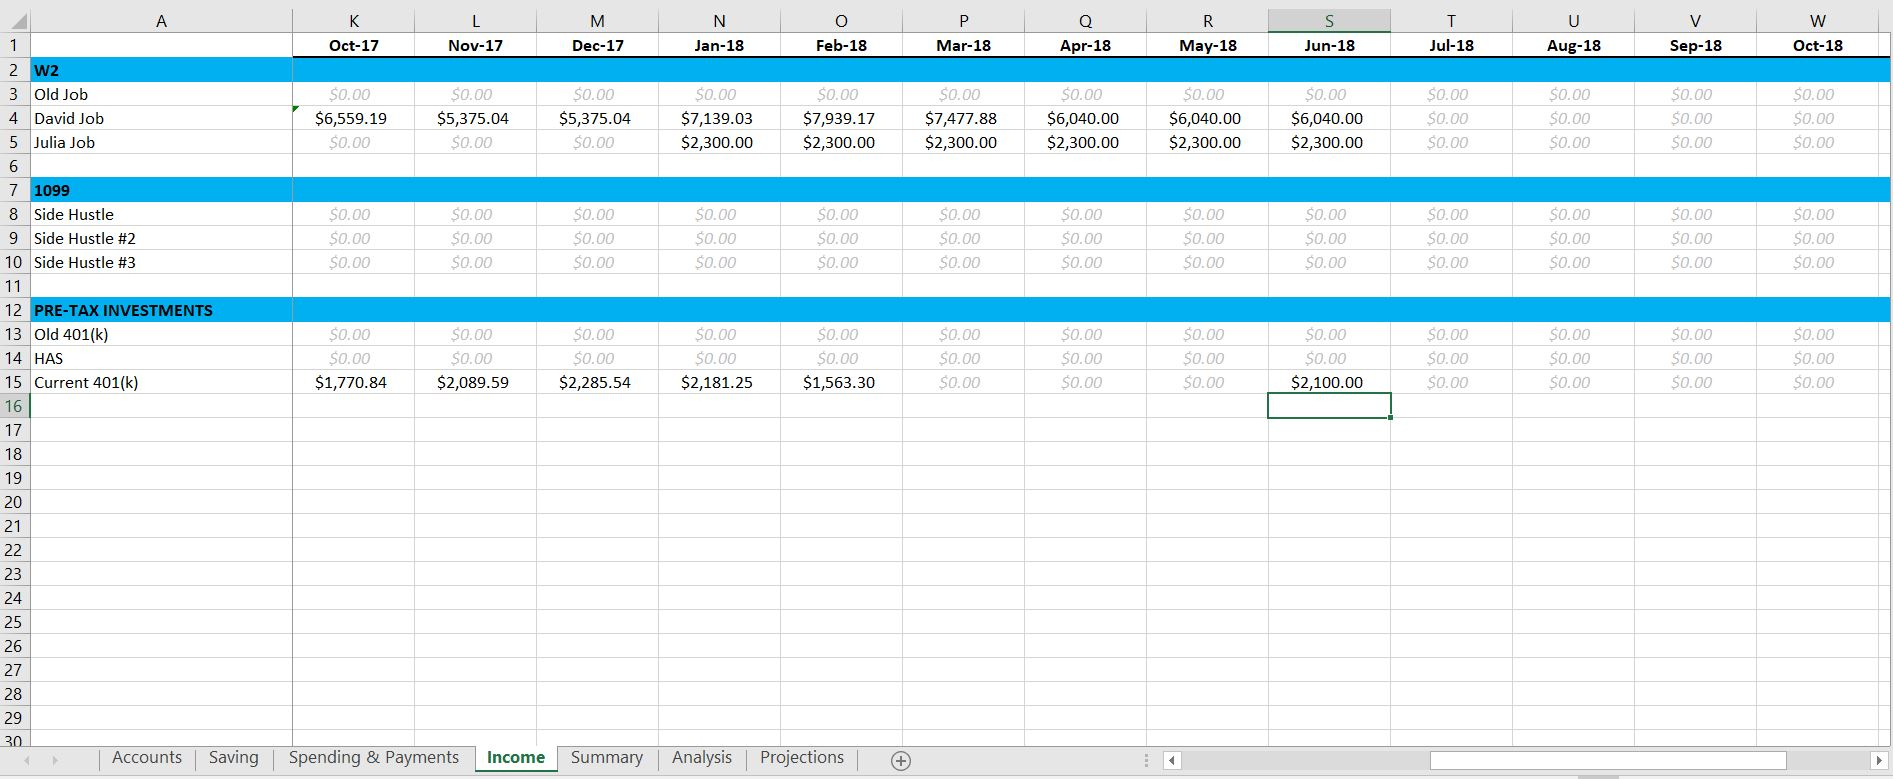 401K Projection Spreadsheet Inside Spreadsheets  Zero Day Finance 401K Projection Spreadsheet Google Spreadshee Google Spreadshee 401k projection spreadsheet